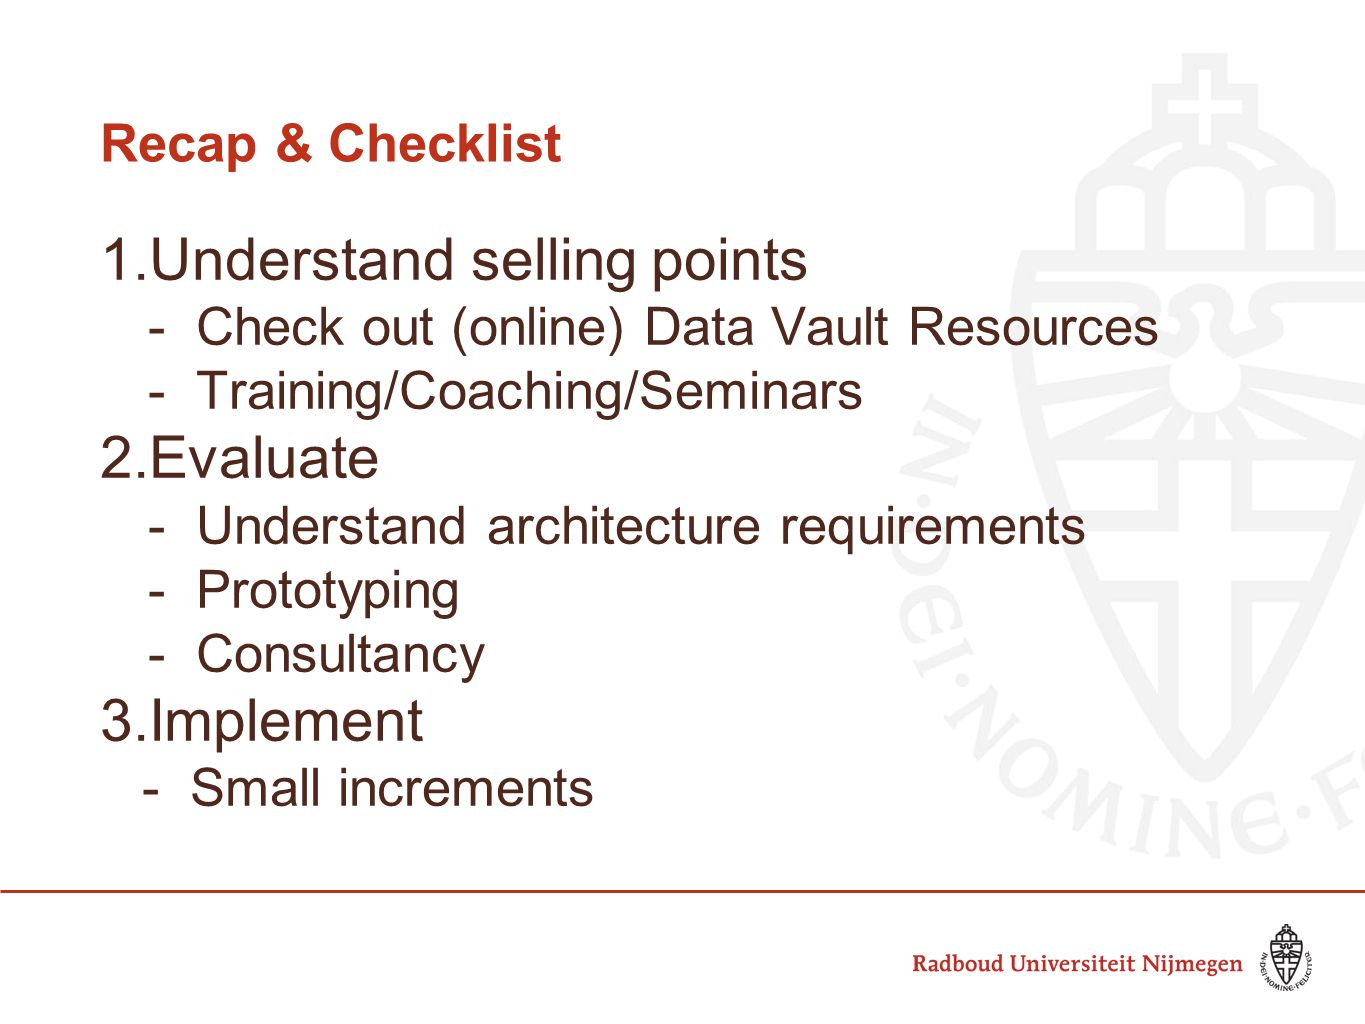 Recap & Checklist 1.Understand selling points -Check out (online) Data Vault Resources -Training/Coaching/Seminars 2.Evaluate -Understand architecture requirements -Prototyping -Consultancy 3.Implement -Small increments